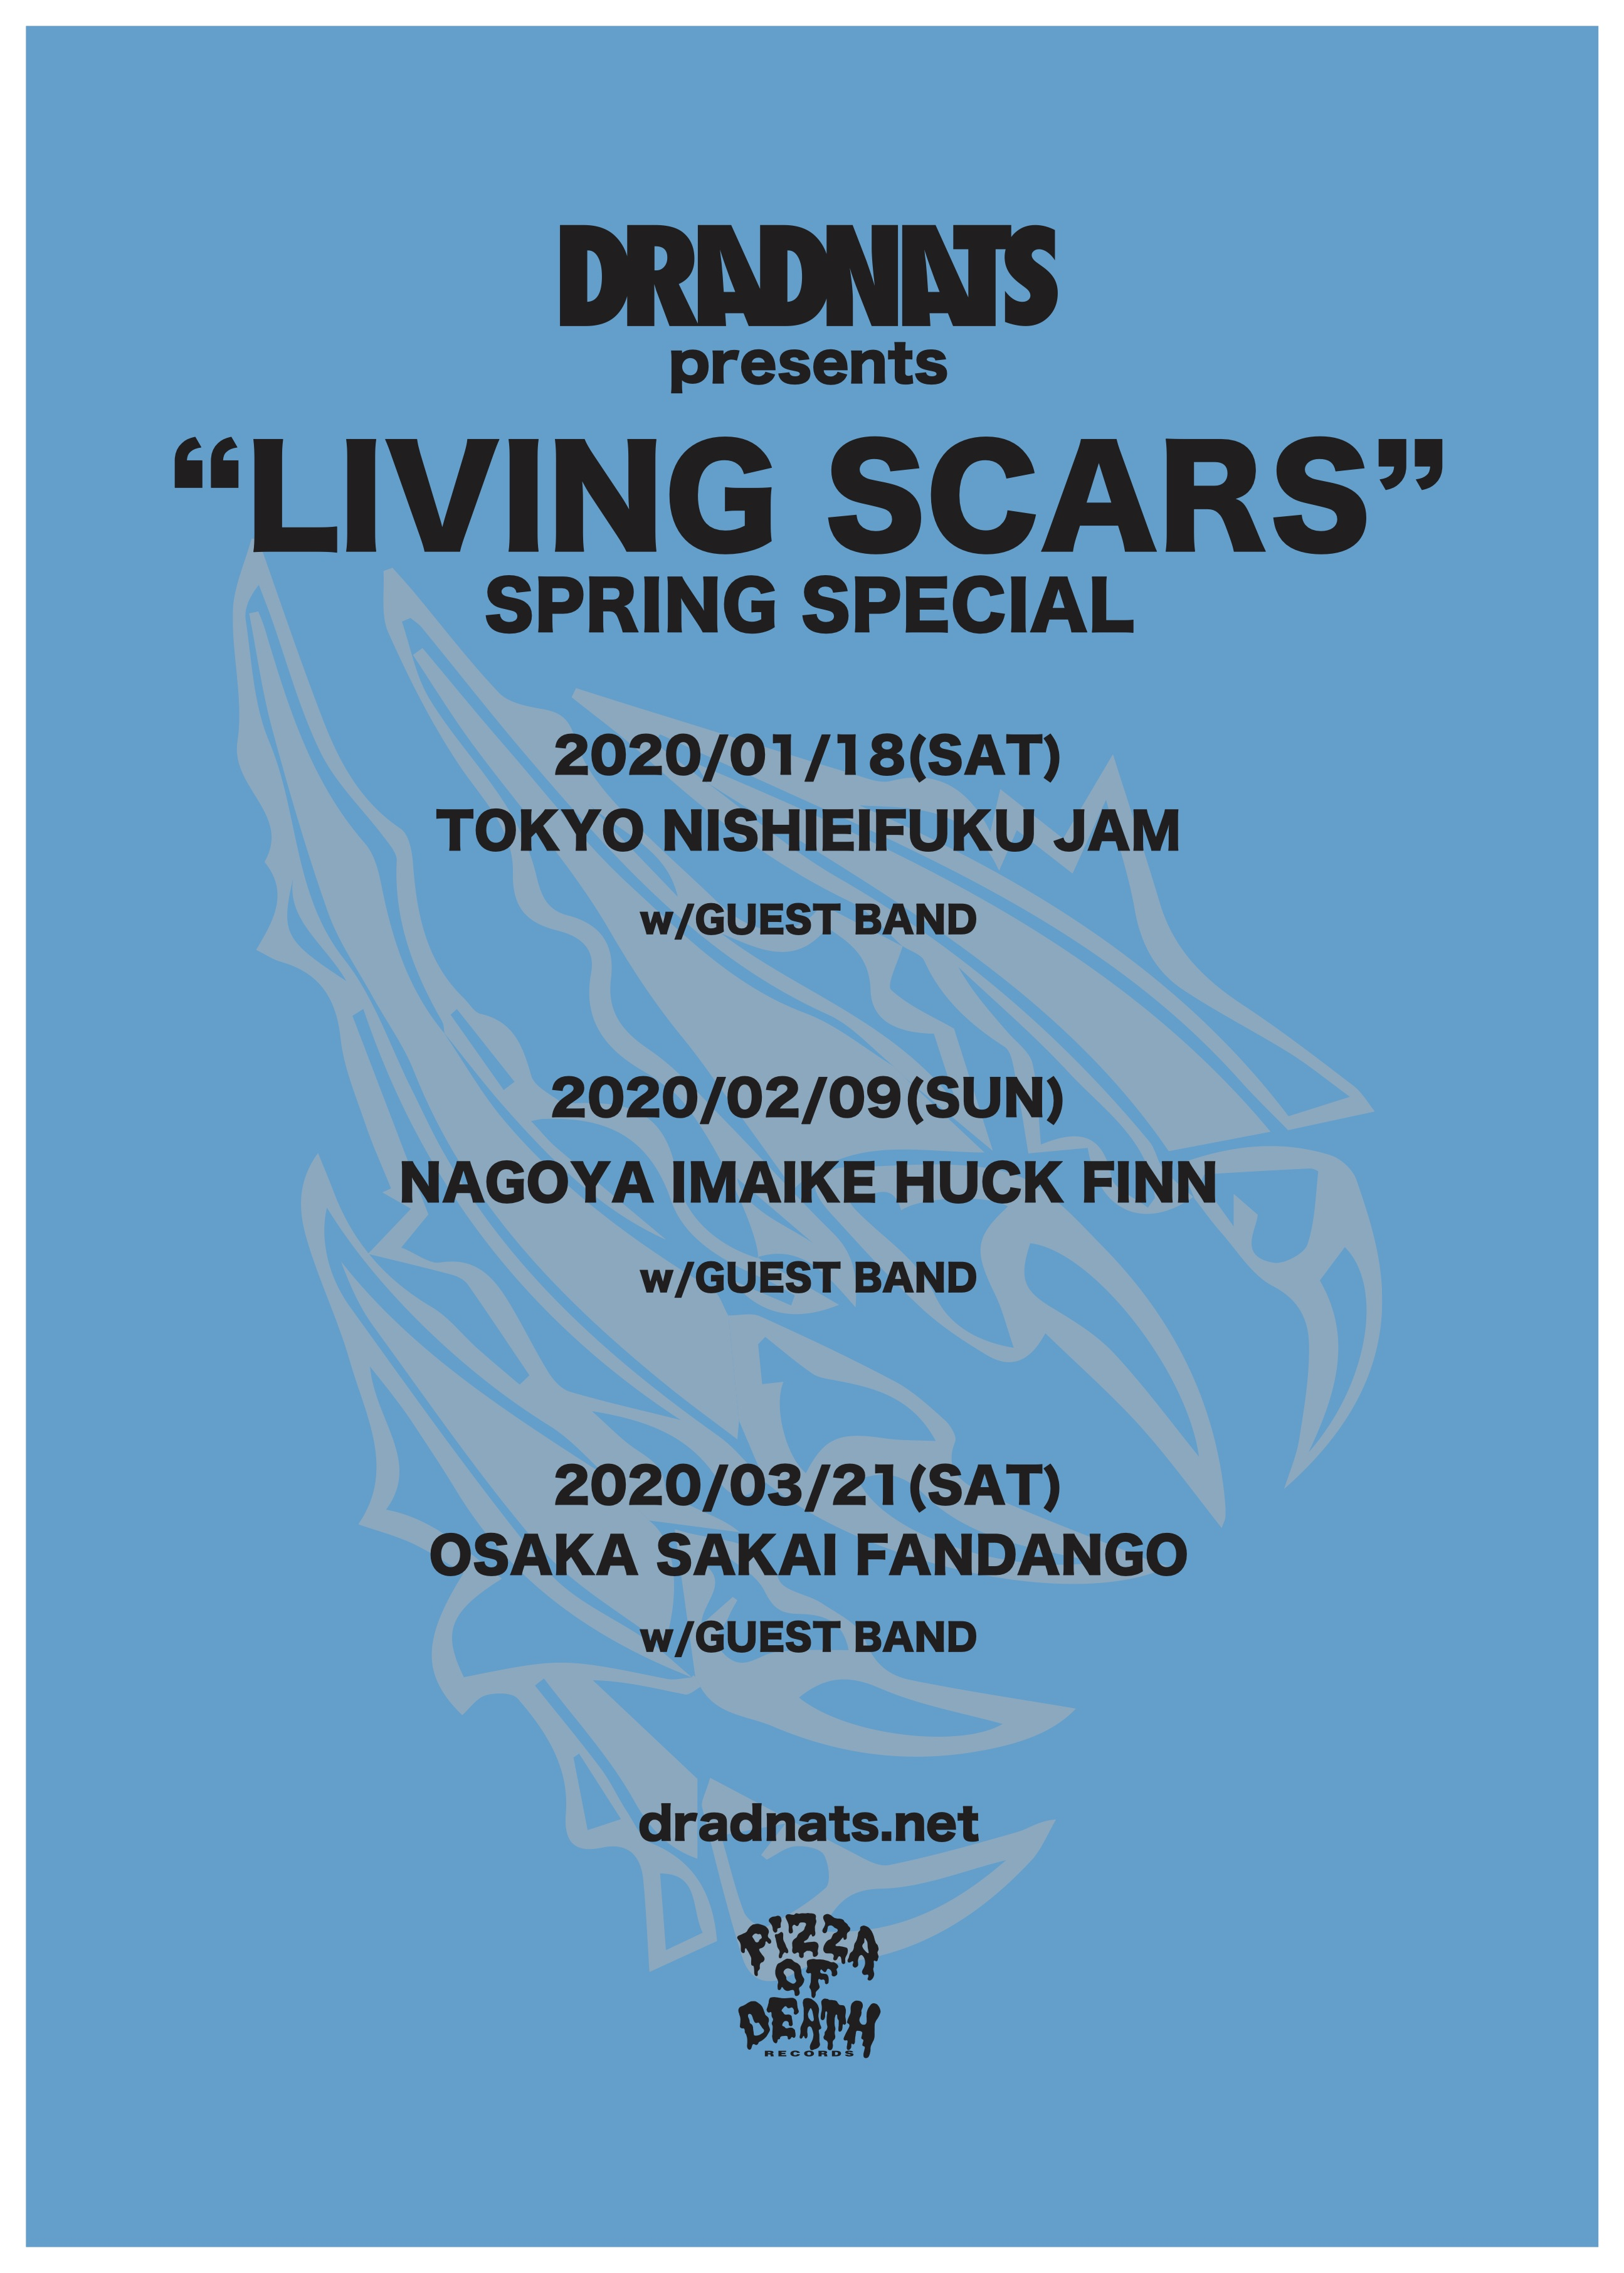 """DRADNATS presents """"LIVING SCARS""""SPRING SPECIAL"""